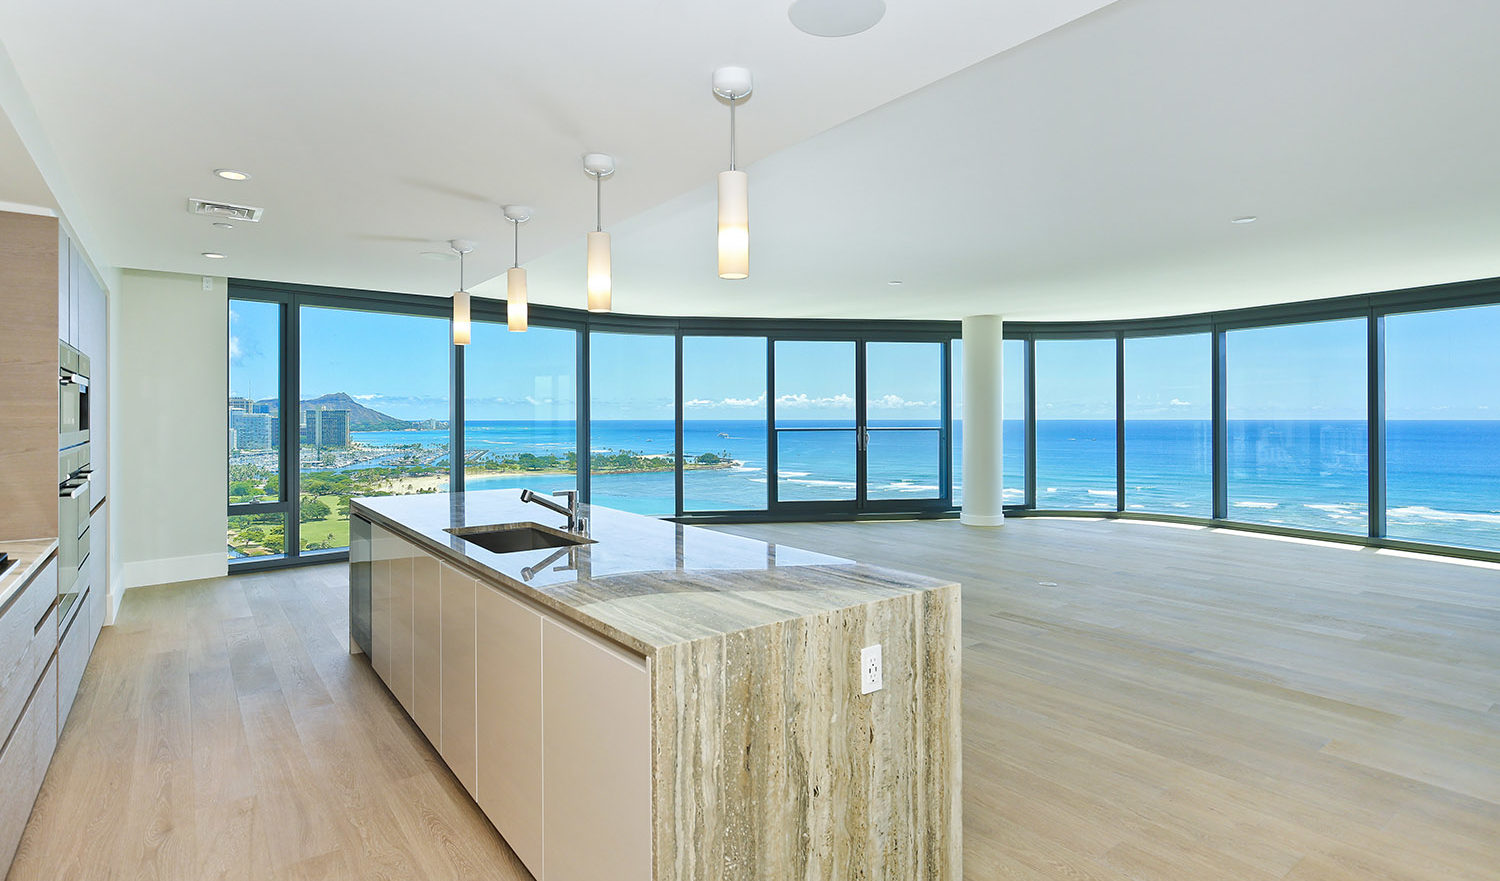 Three Honolulu Condos You Can Get for $4 Million